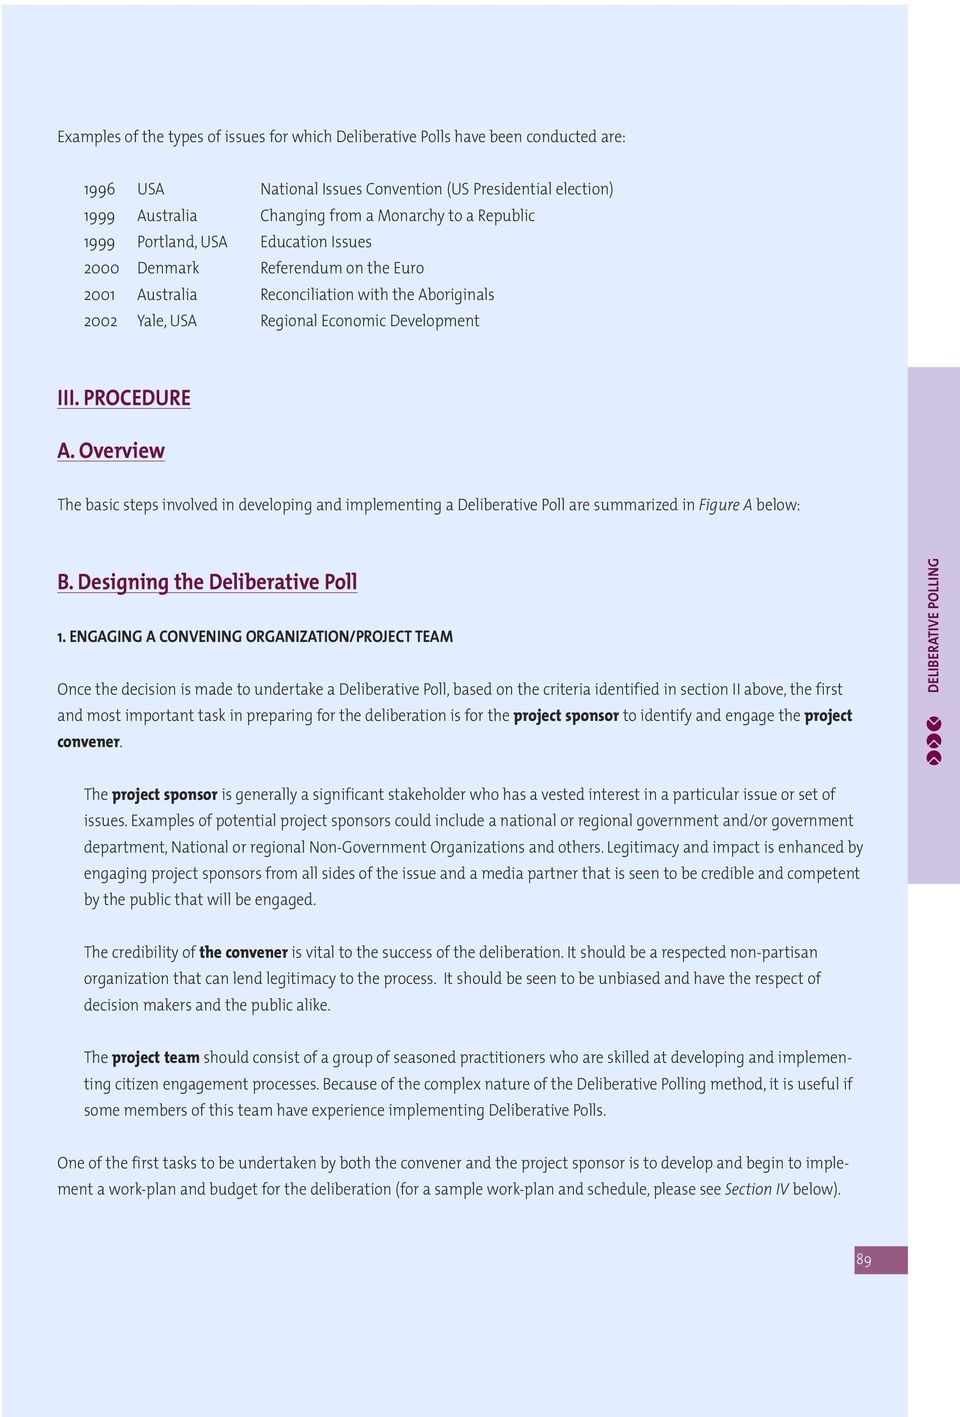 Overview The basic steps involved in developing and implementing a Deliberative Poll are summarized in Figure A below: B. Designing the Deliberative Poll 1.